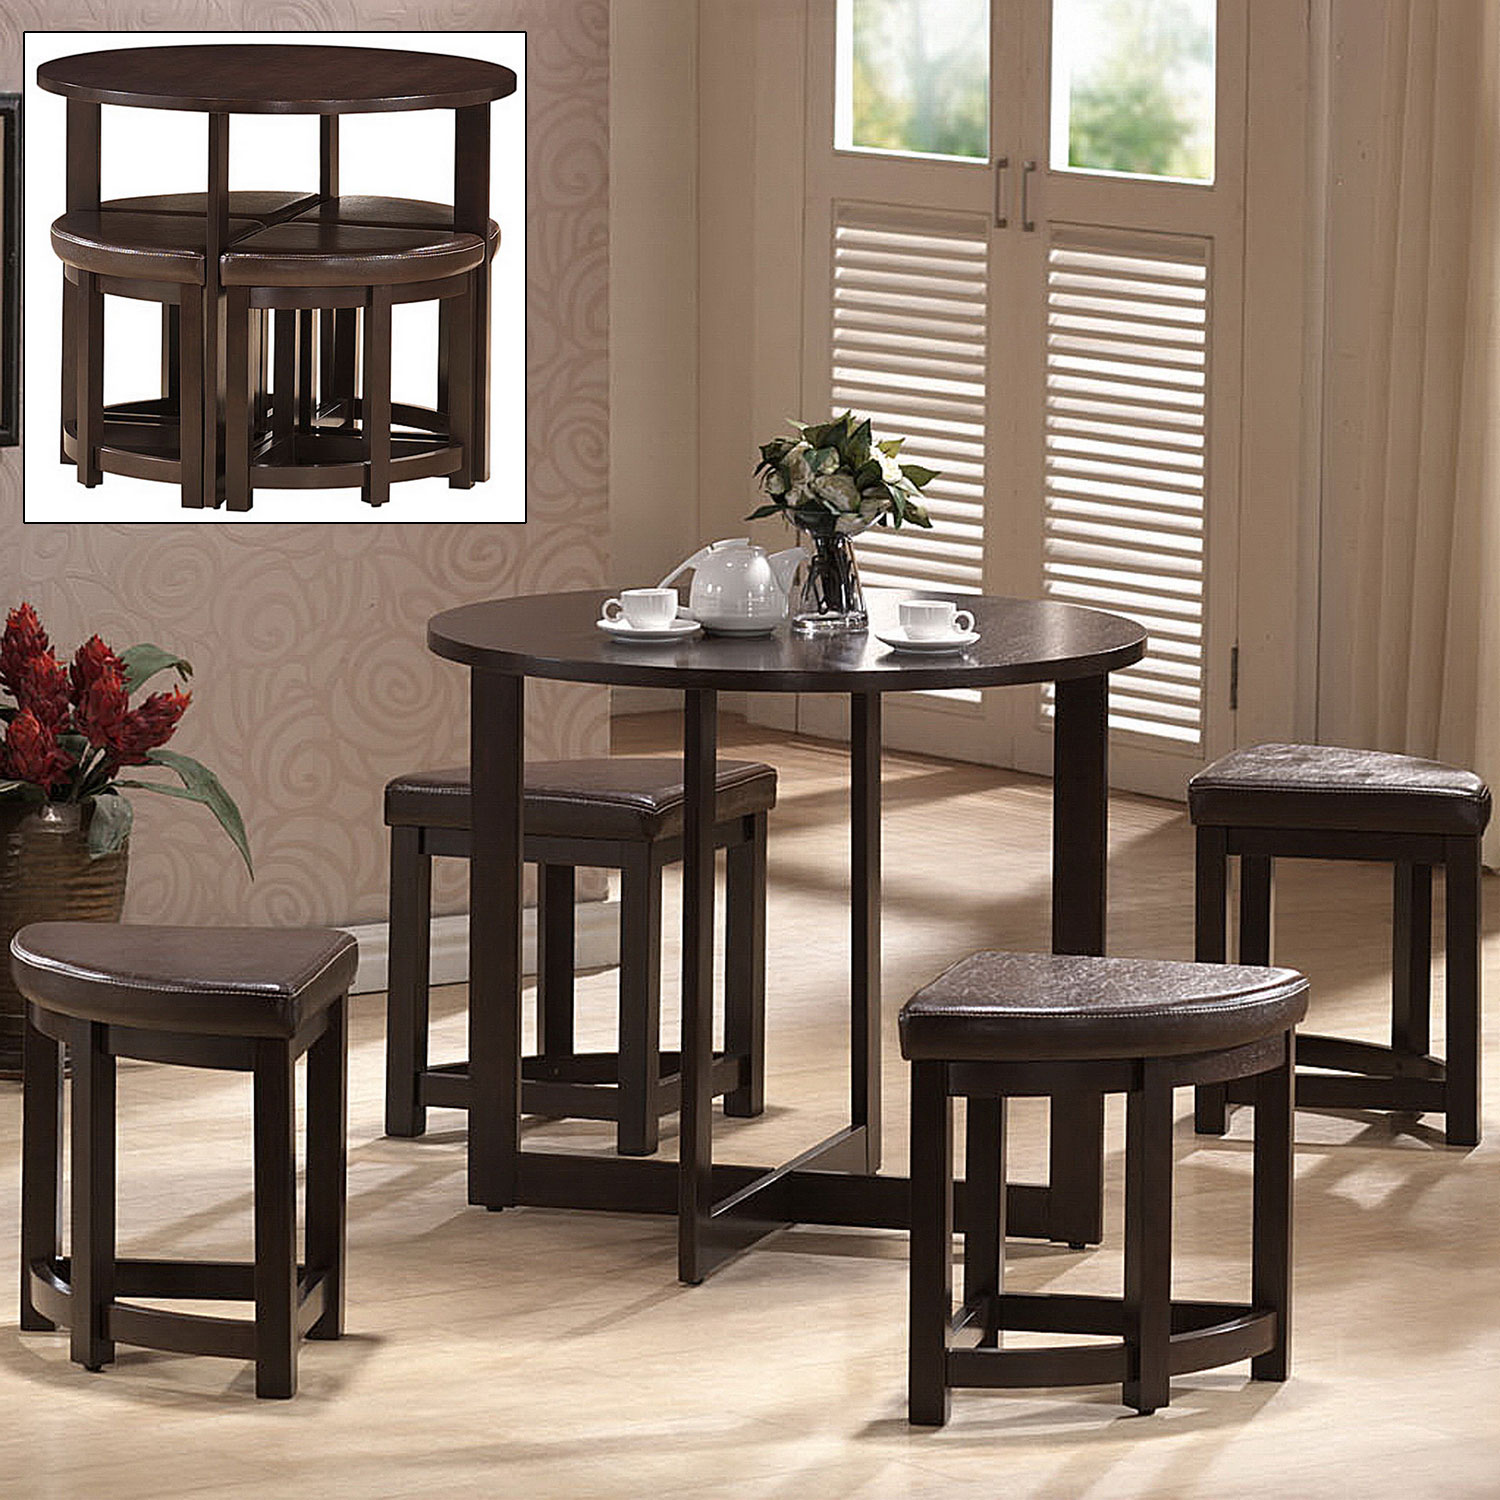 Bar Stools And Table Set Rochester Bar Table Set With Nesting Stools In Bar Table Sets